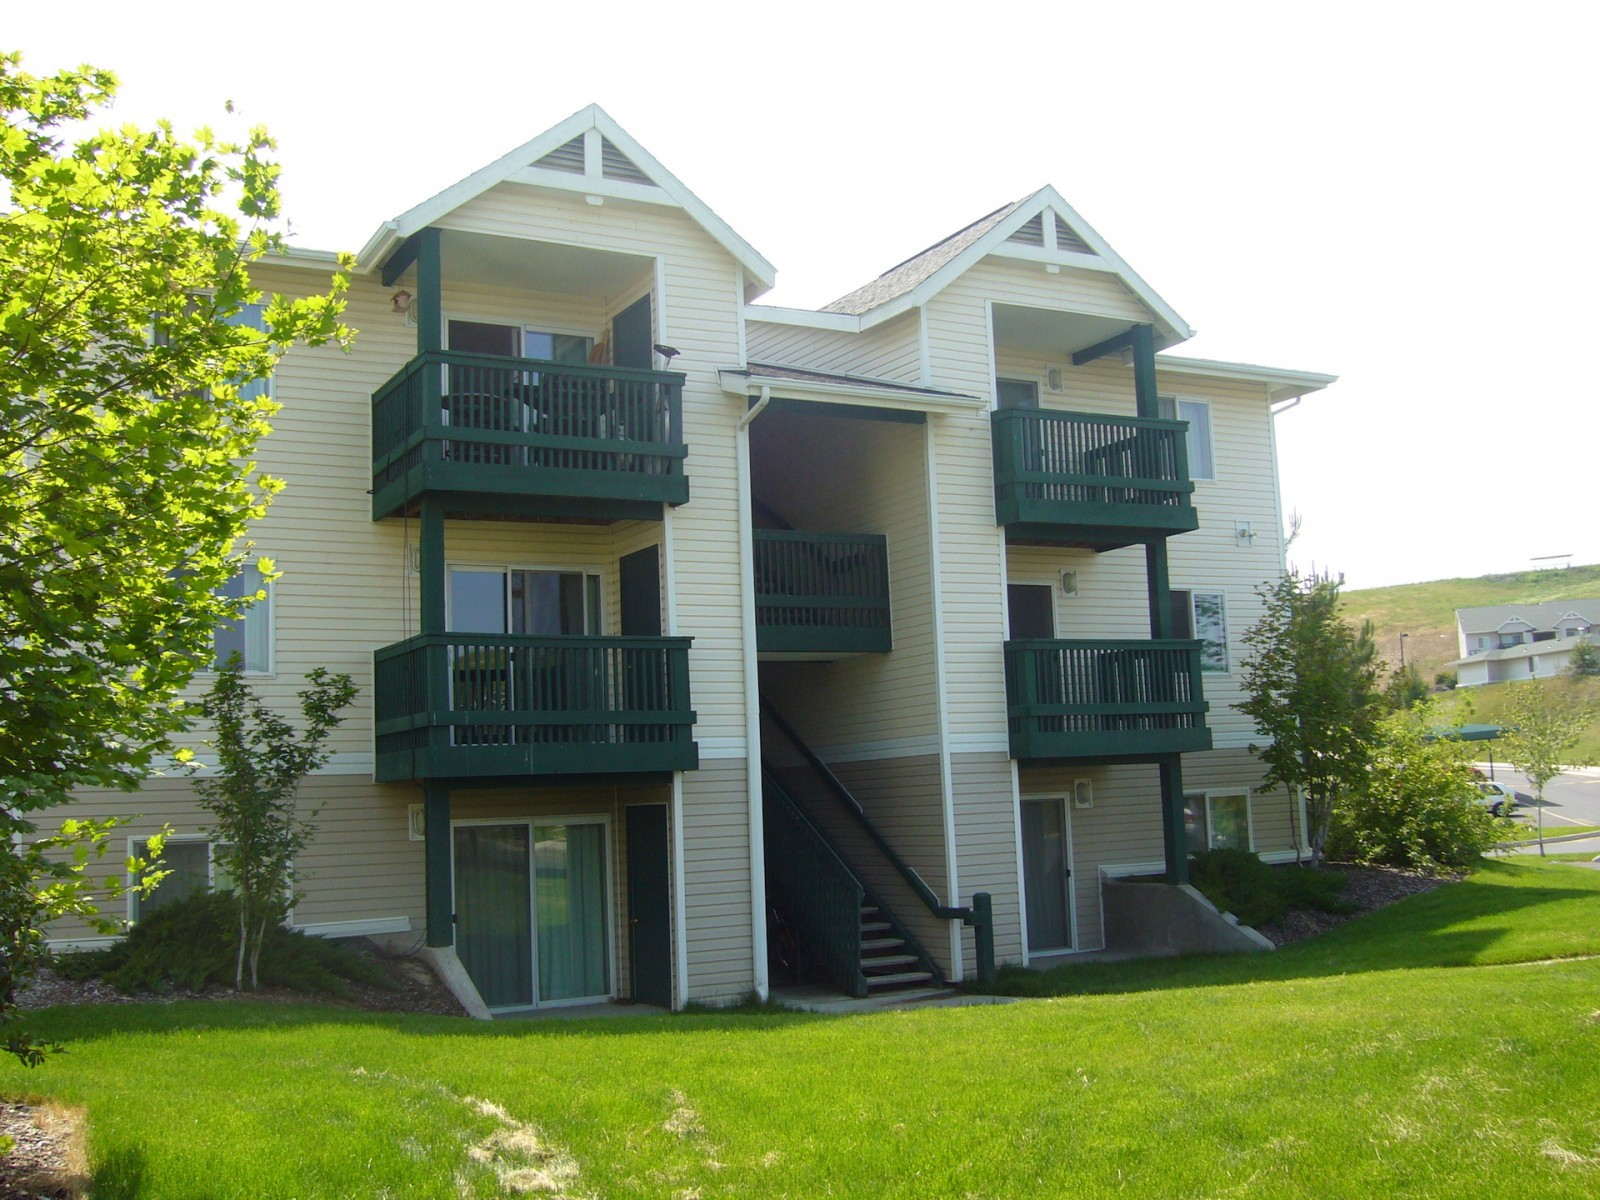 Apartments Near WSU Aspen Village Apartments for Washington State University Students in Pullman, WA